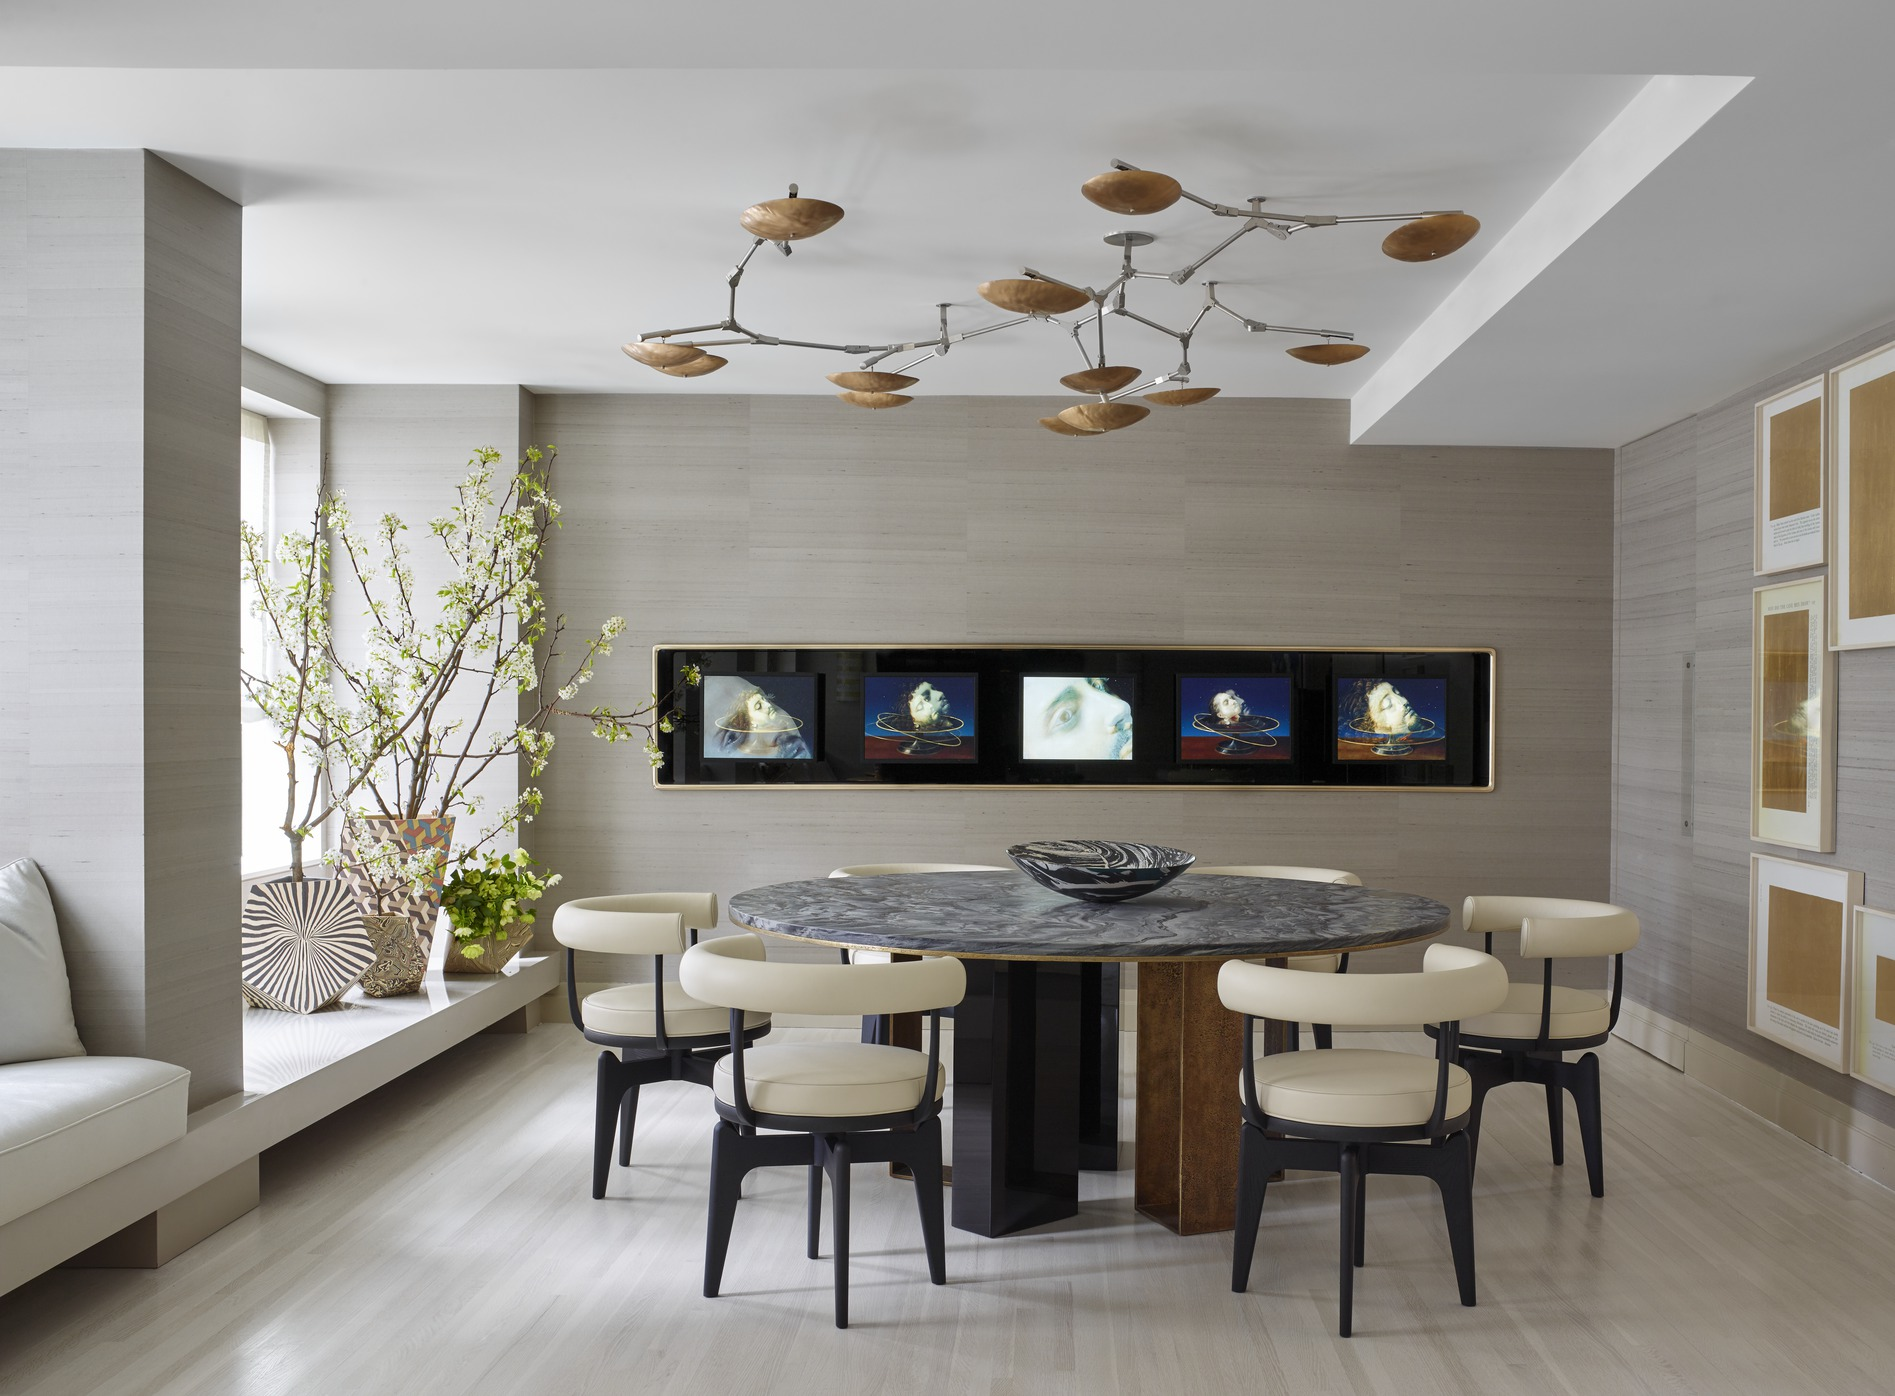 25 Modern Dining Room Decorating Ideas - Contemporary ...